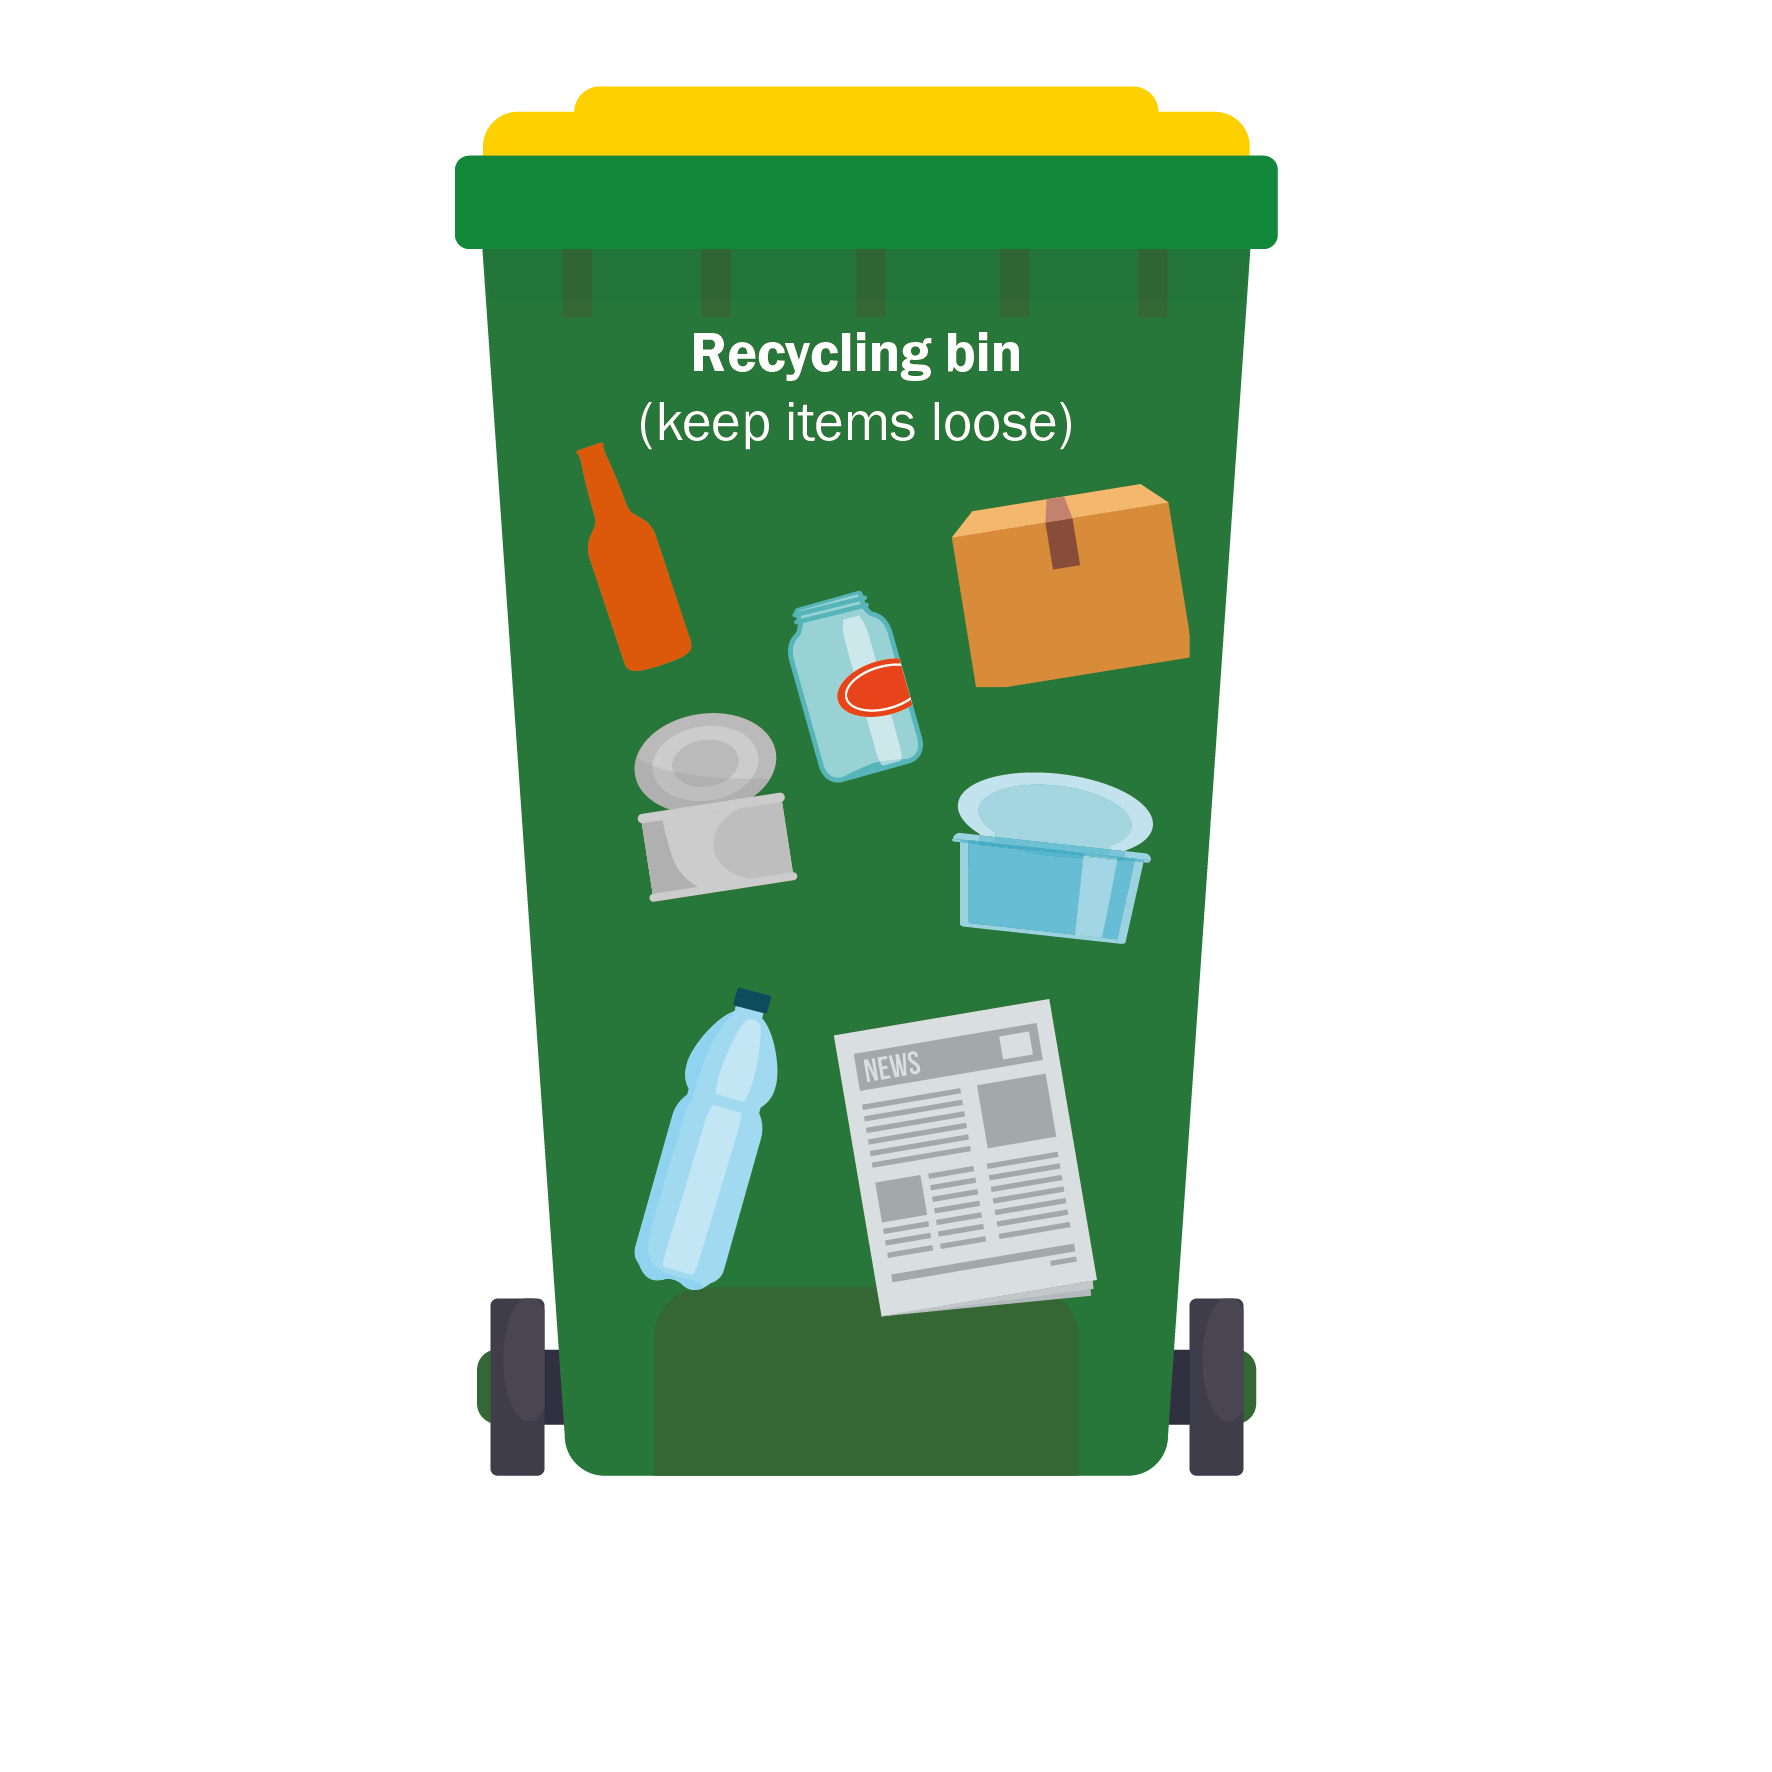 Recycling bin example contents - see text